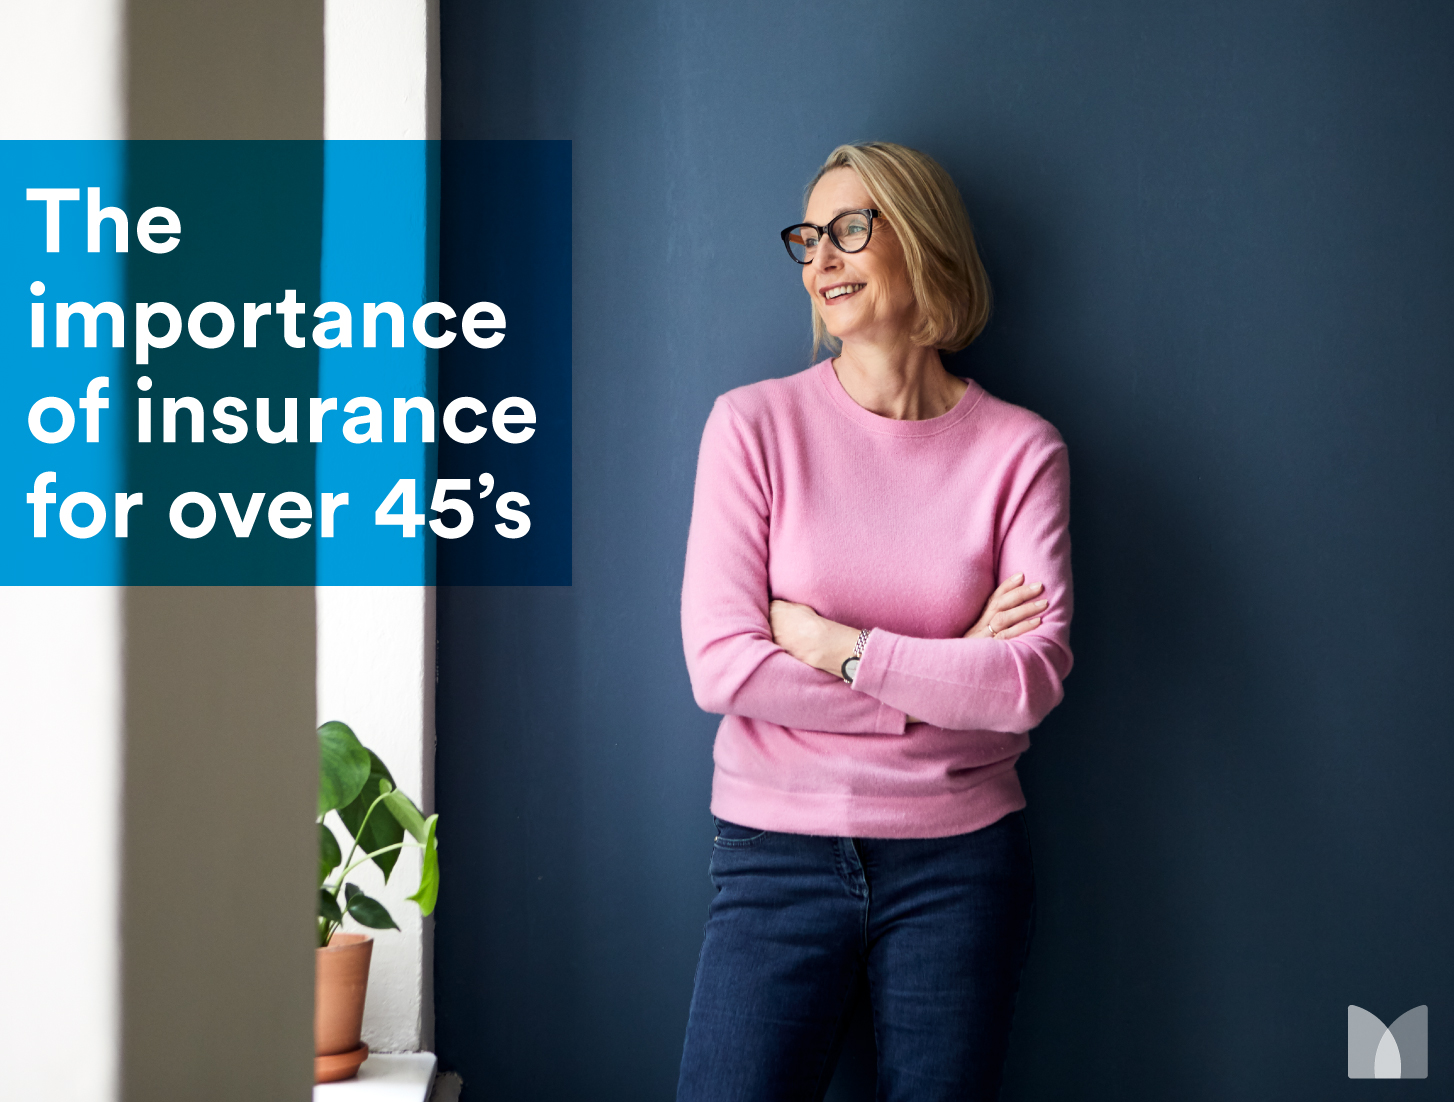 How Advisers can help Over 45s